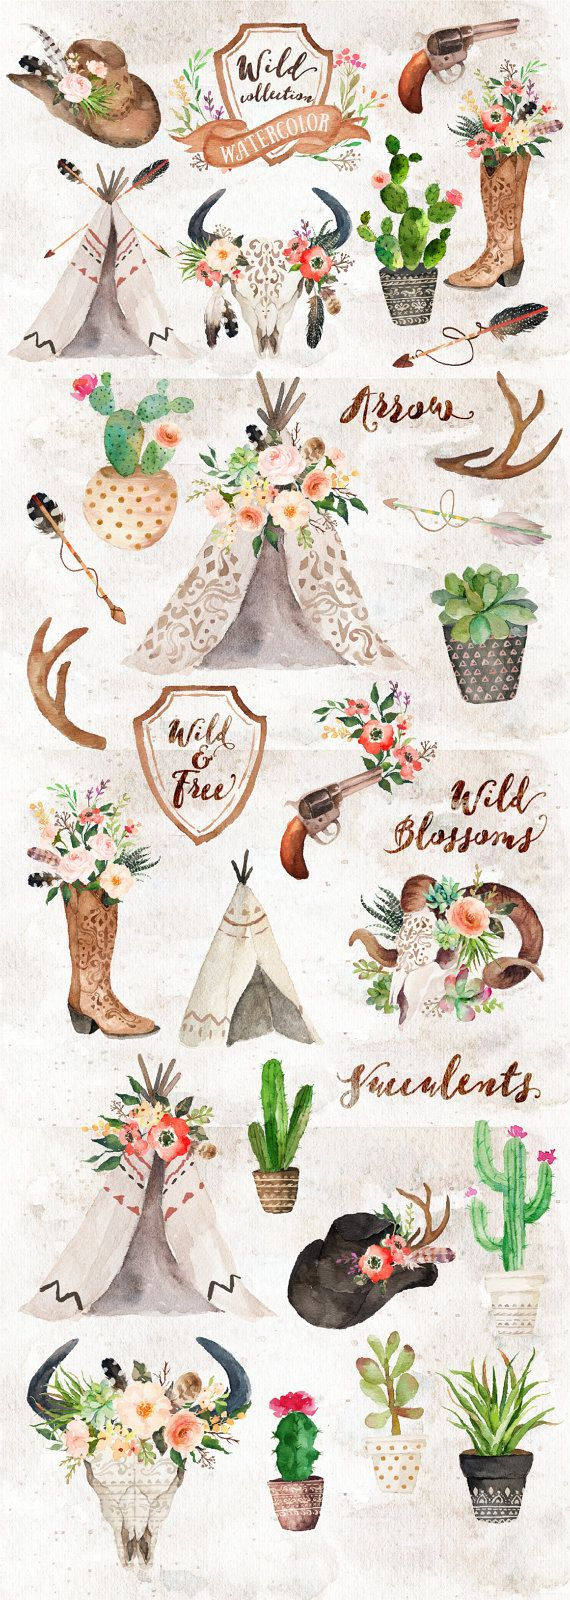 Watercolor Wild West Collection/Wedding/Clip art collection/Individual PNG files/Hand Painted/boho style/rustic